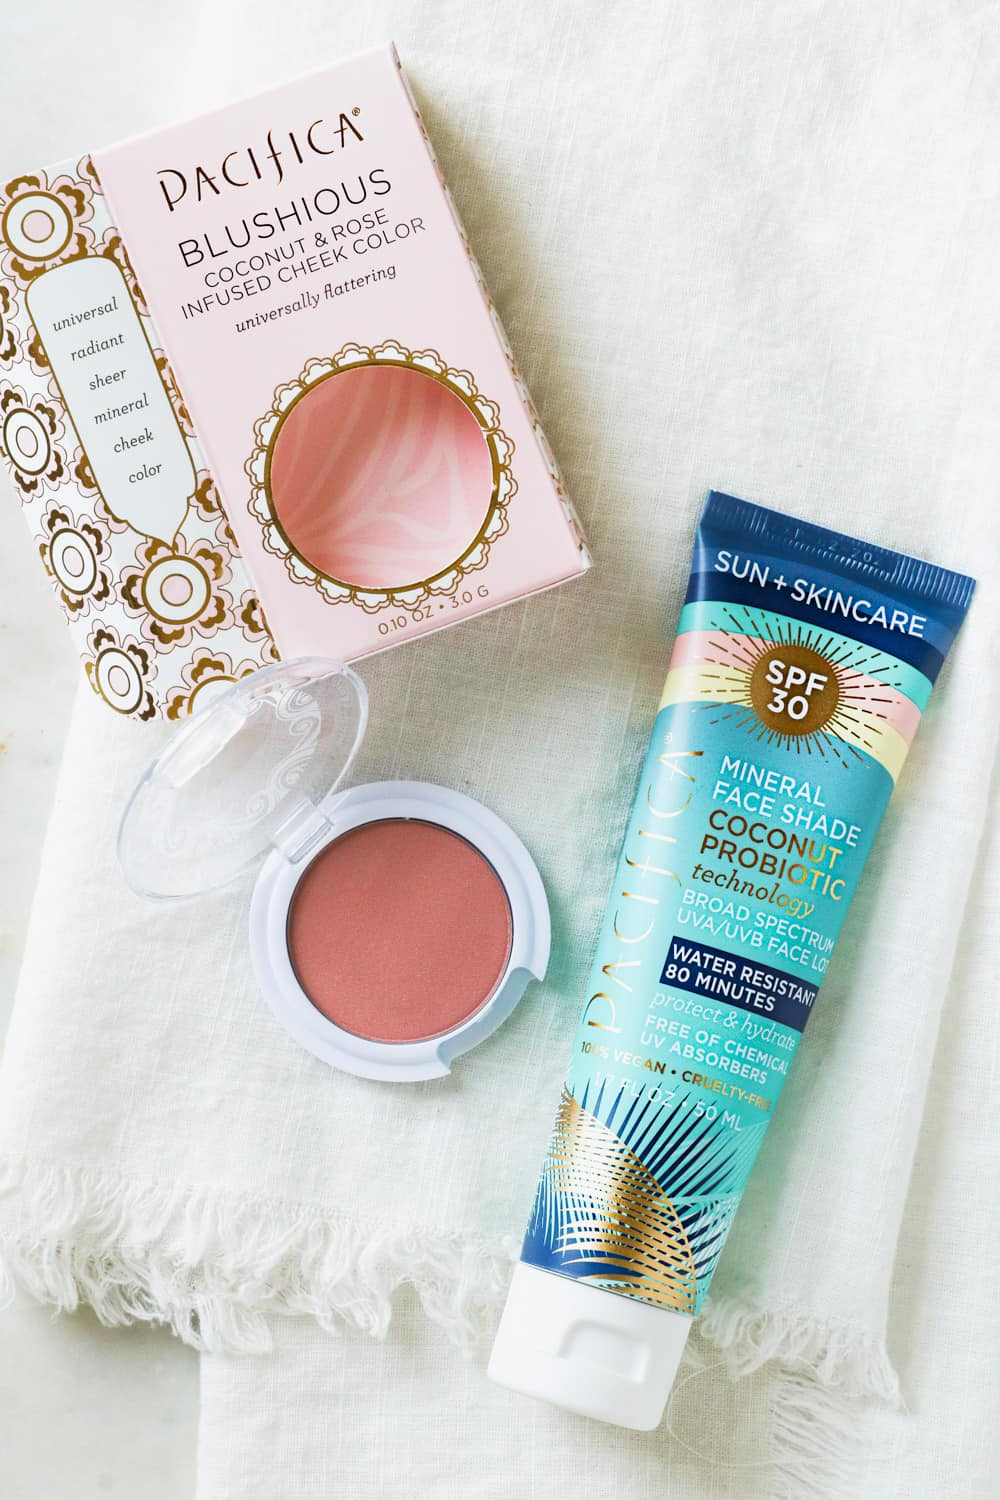 Pacifica Blushious and Mineral Face Shade | Beauty Gift Guide